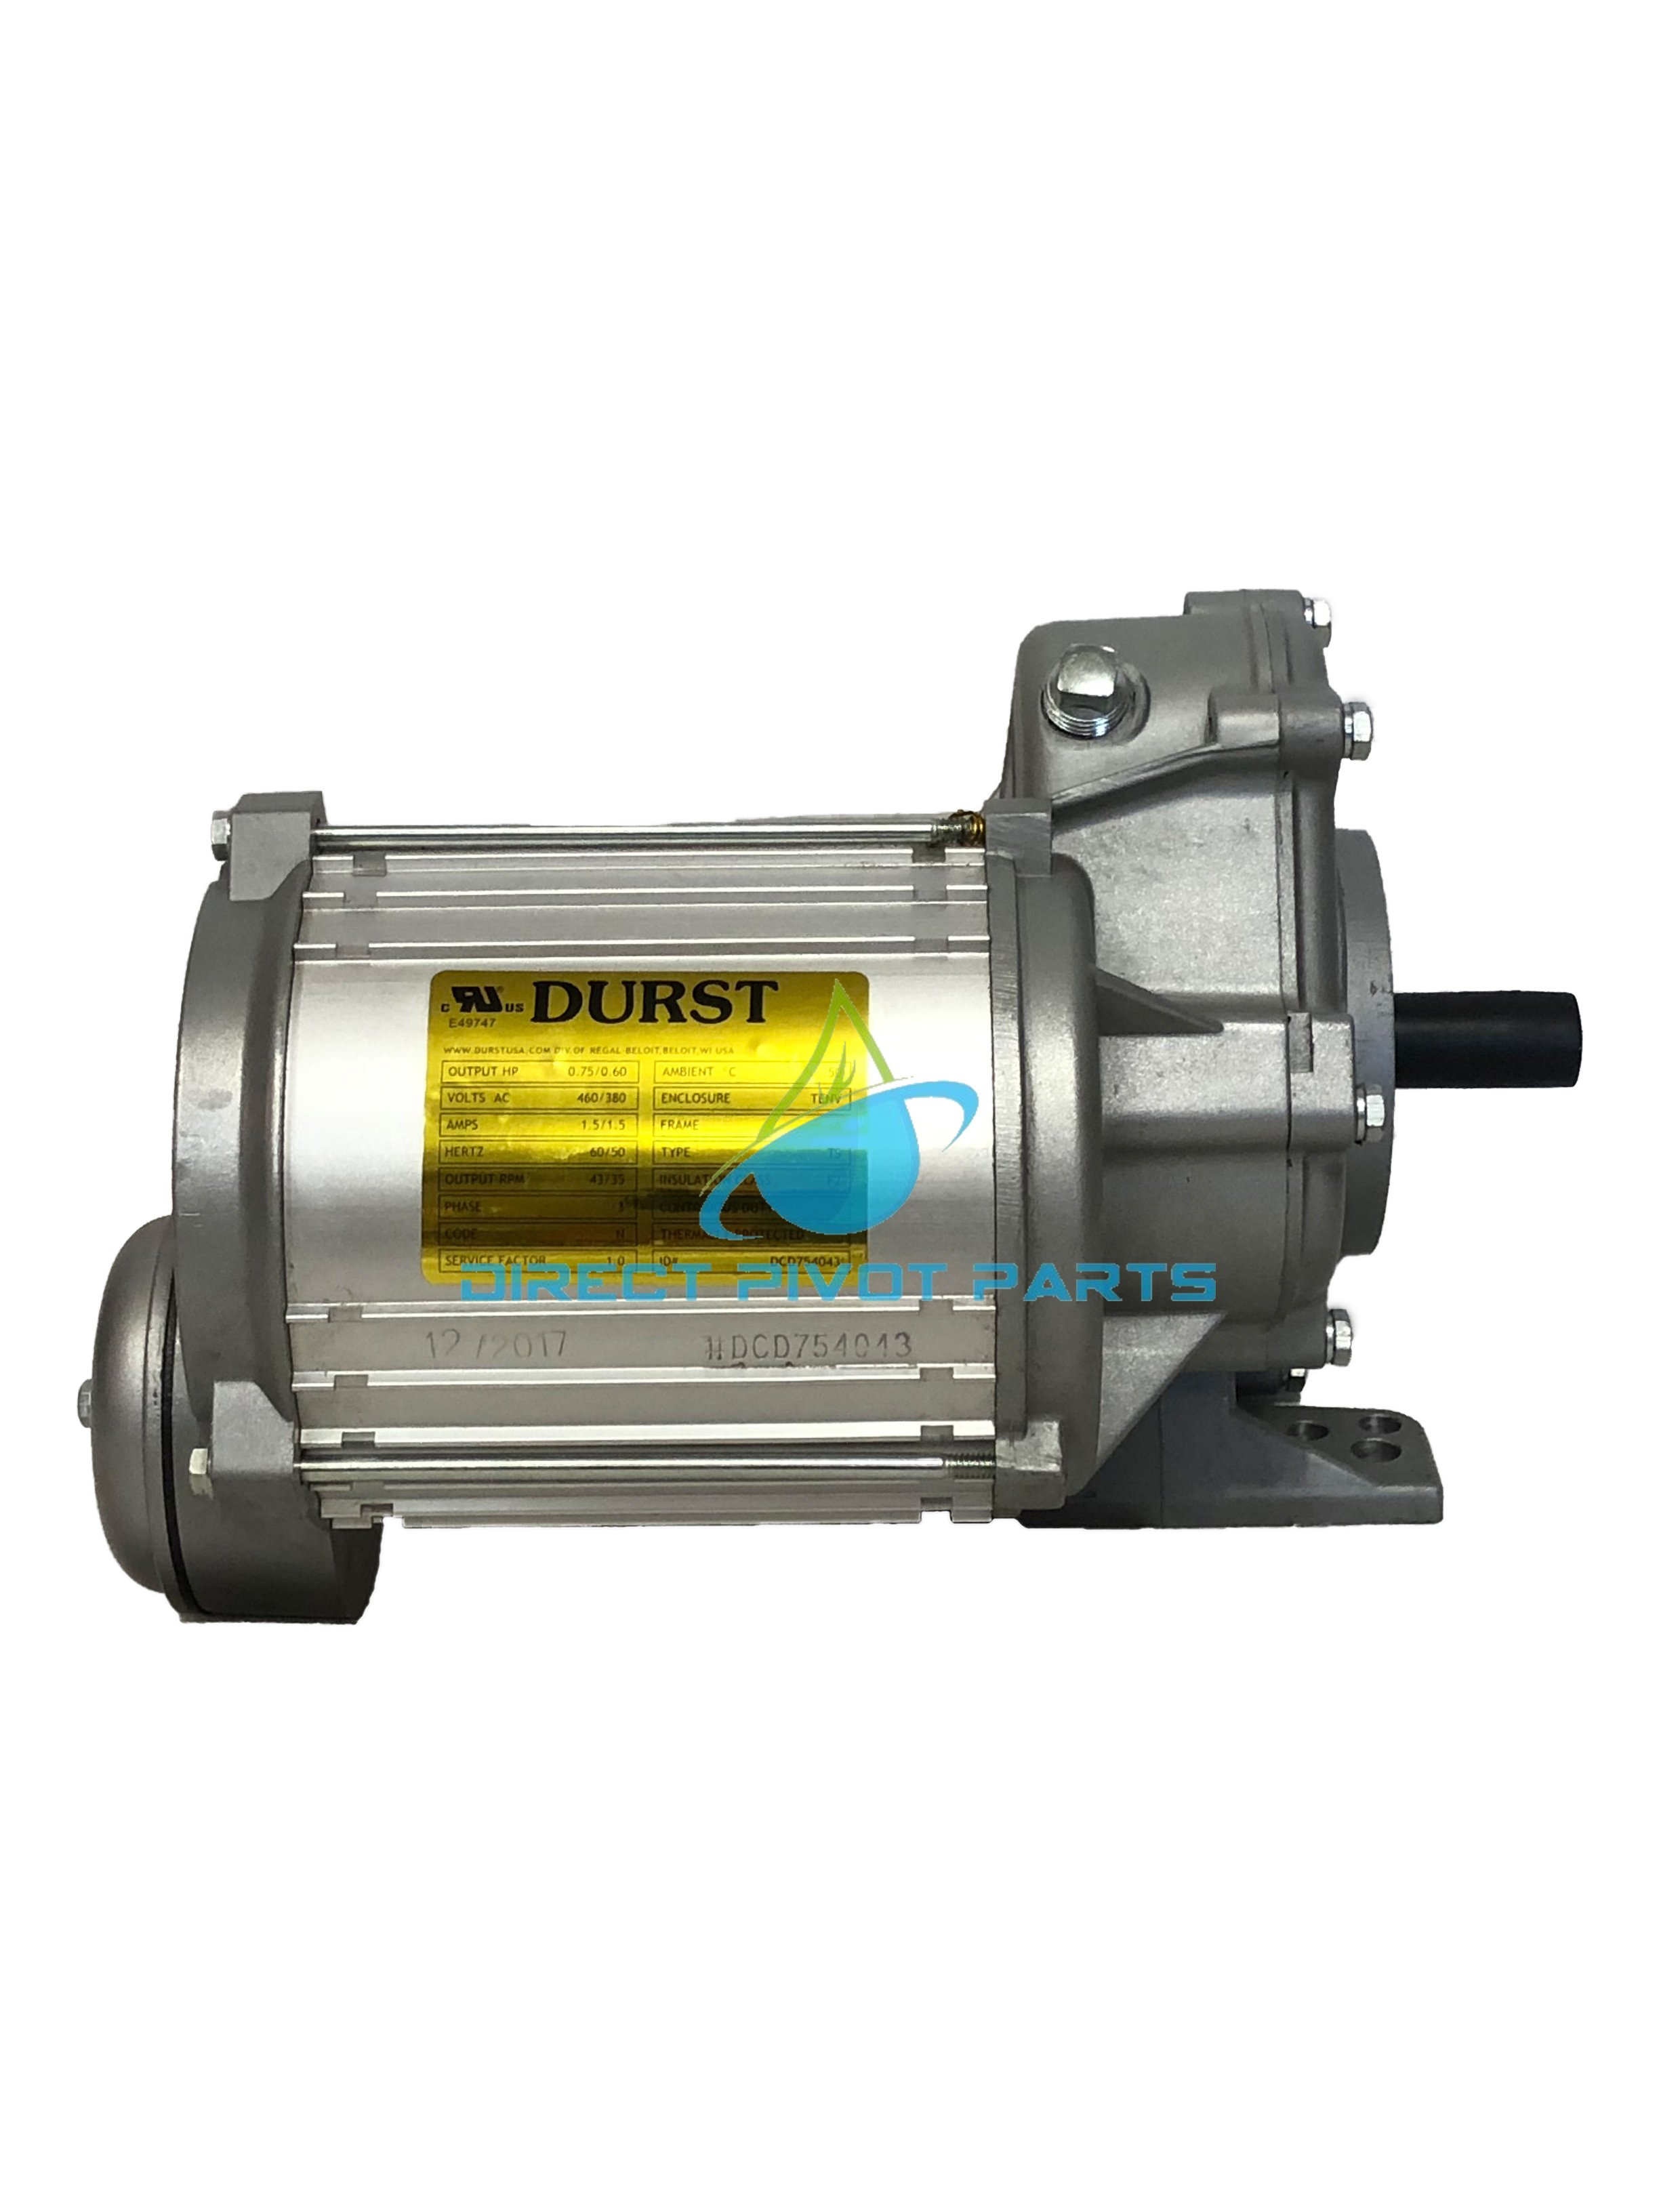 Durst Pivot Center Drive 1.5 H.P. 57 RPM Gear Ratio 30:1